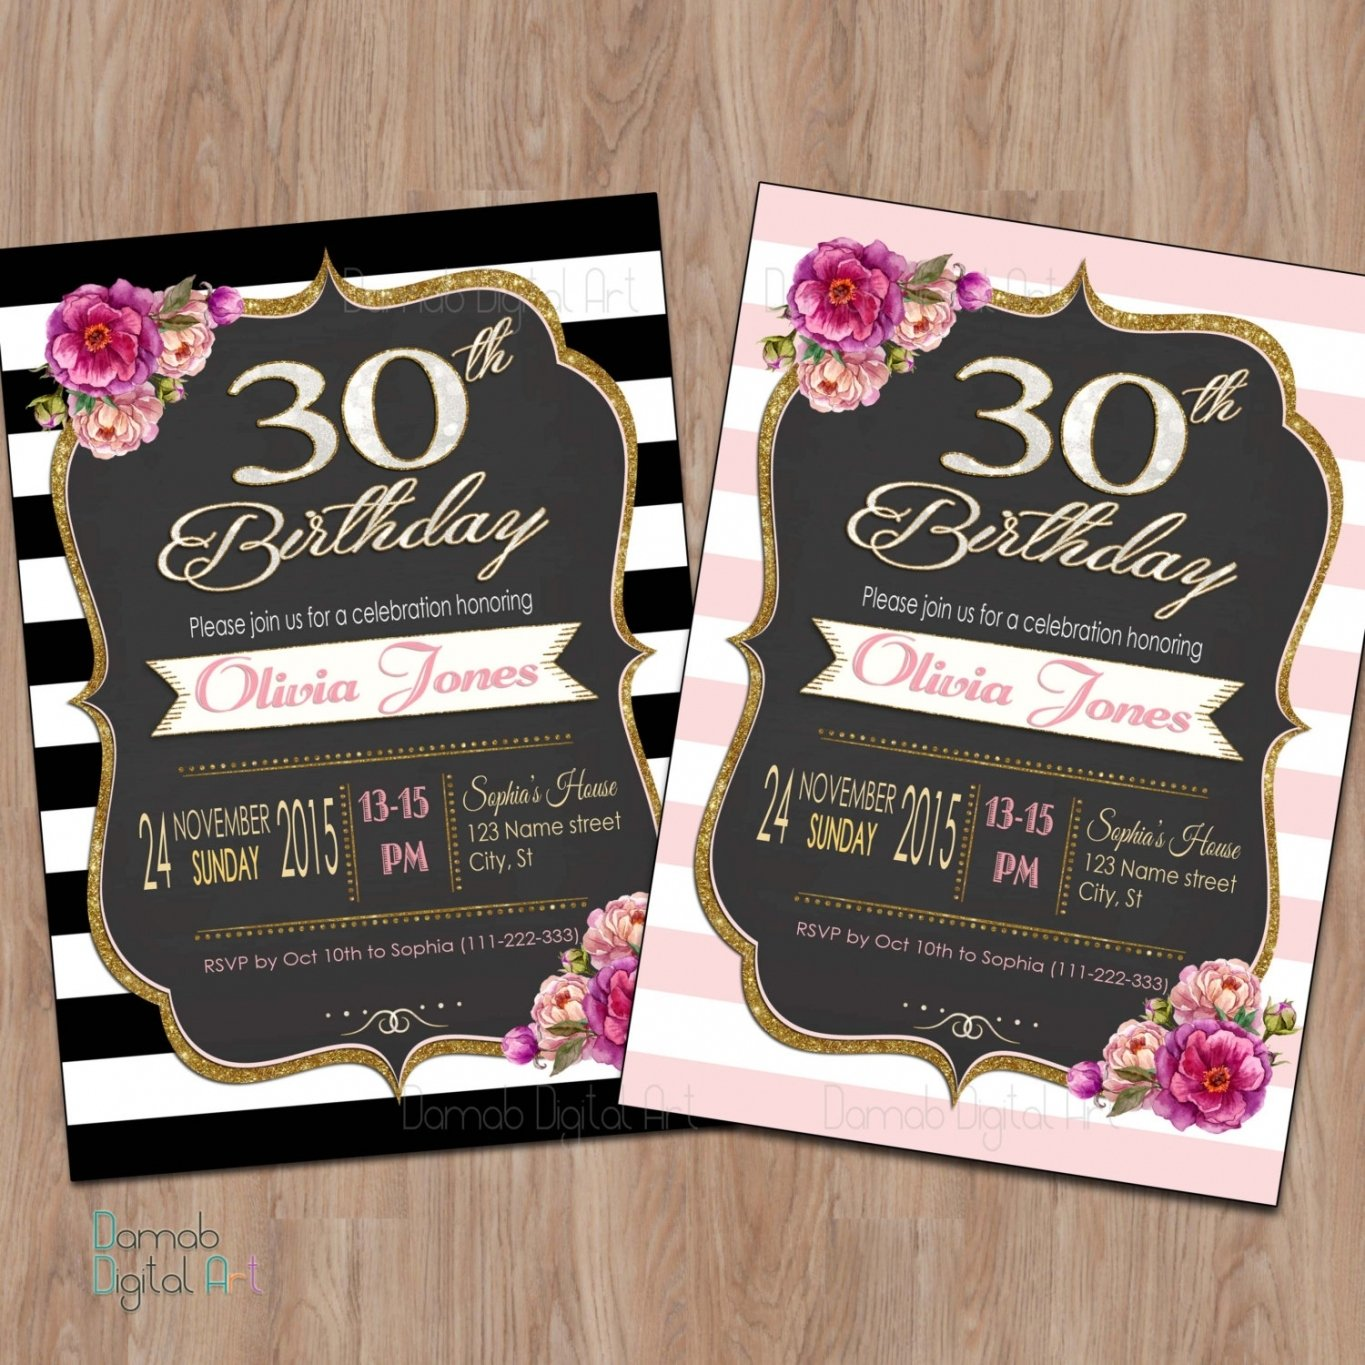 10 Gorgeous 30 Birthday Party Ideas For Her tips to create 30th birthday party invitations for her ideas 4